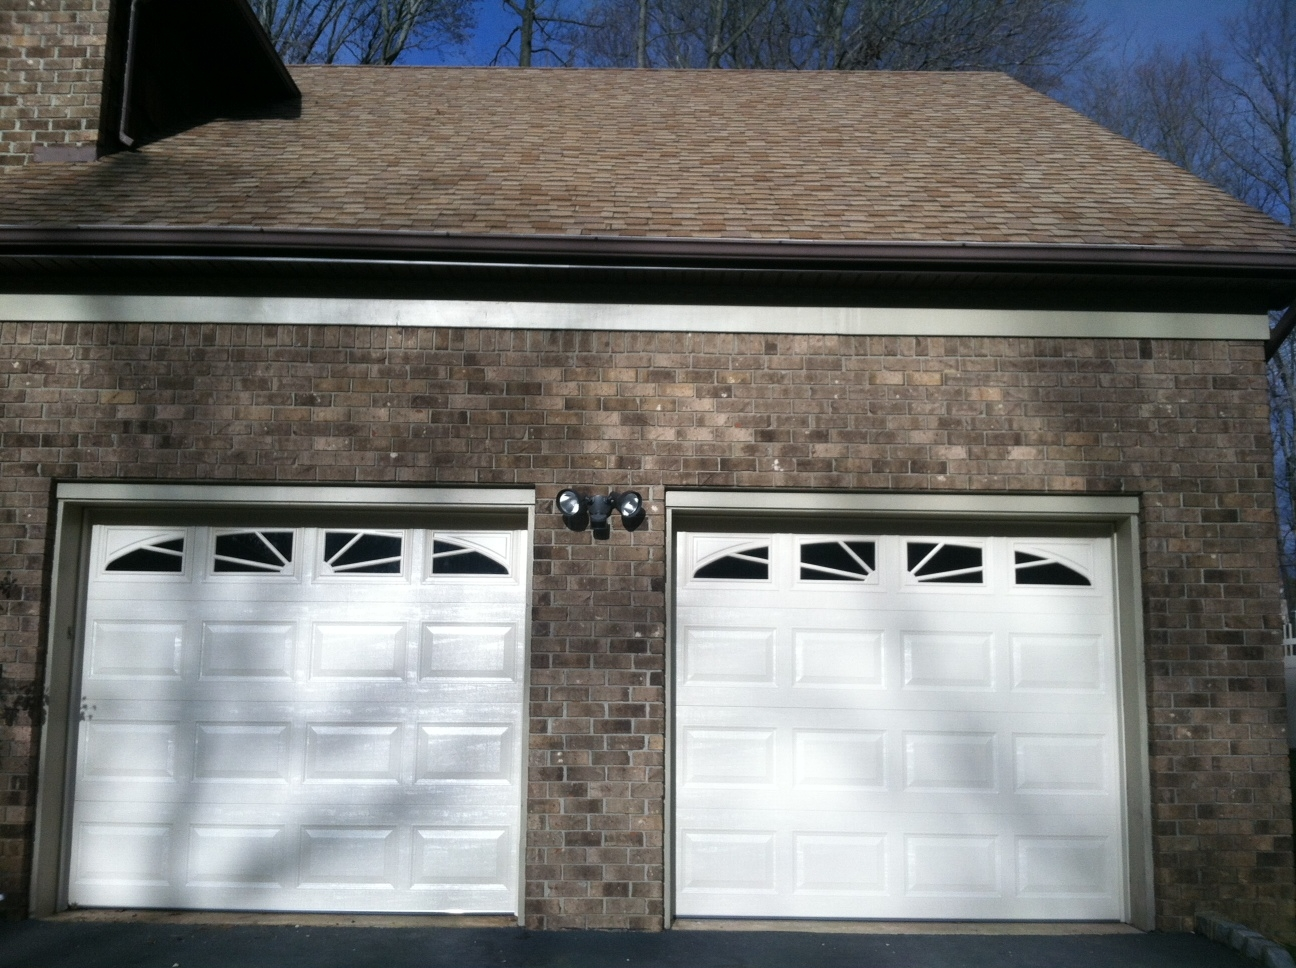 968 #415C8B Garage Doors Including Roller Garage Doors And Custom Garage Doors  picture/photo Install Garage Doors 37091296